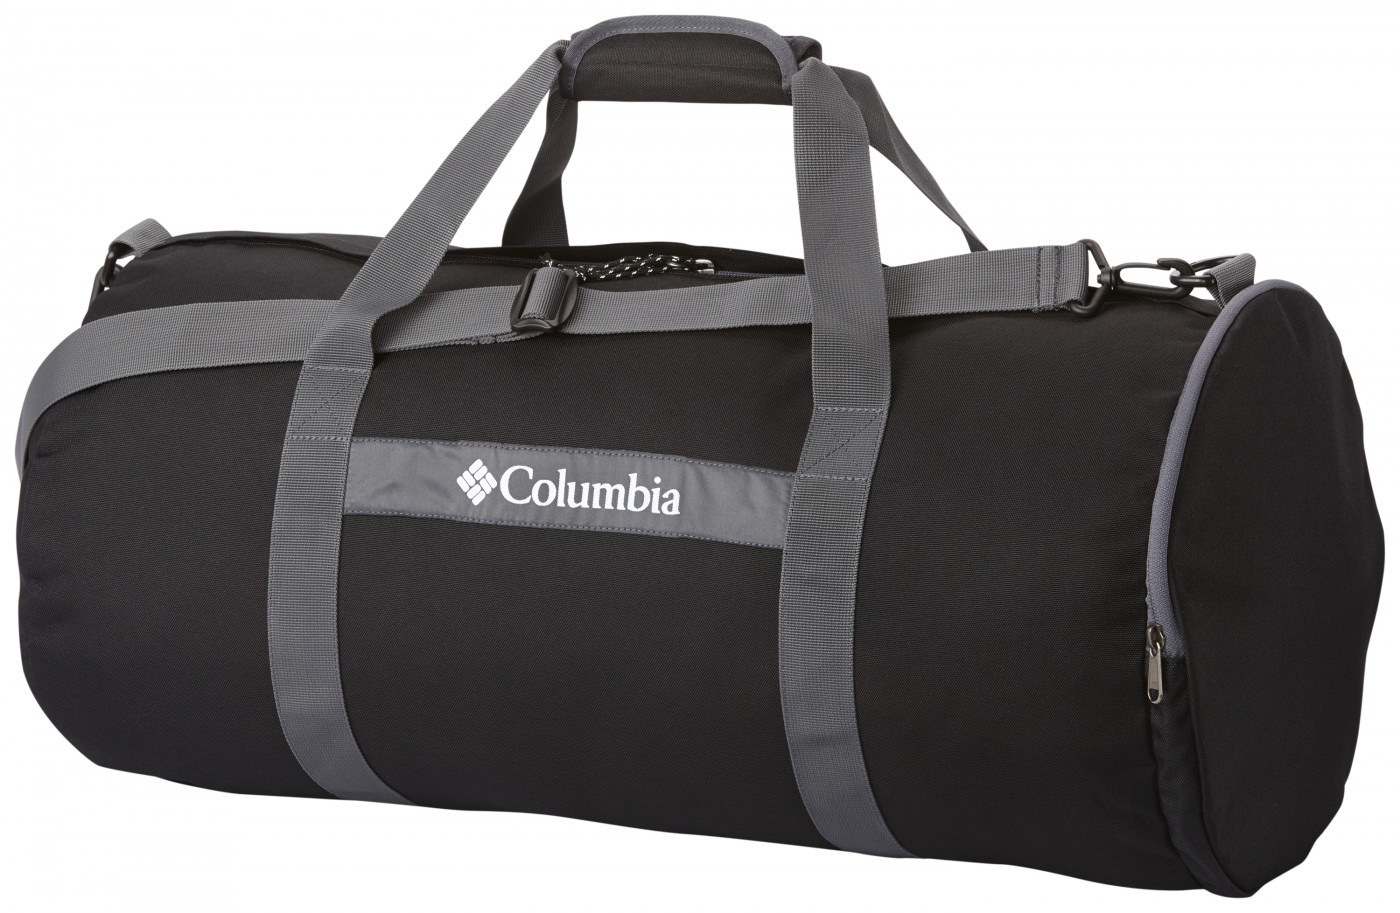 Travel bag Columbia Barrelhead MD Duffel Bag